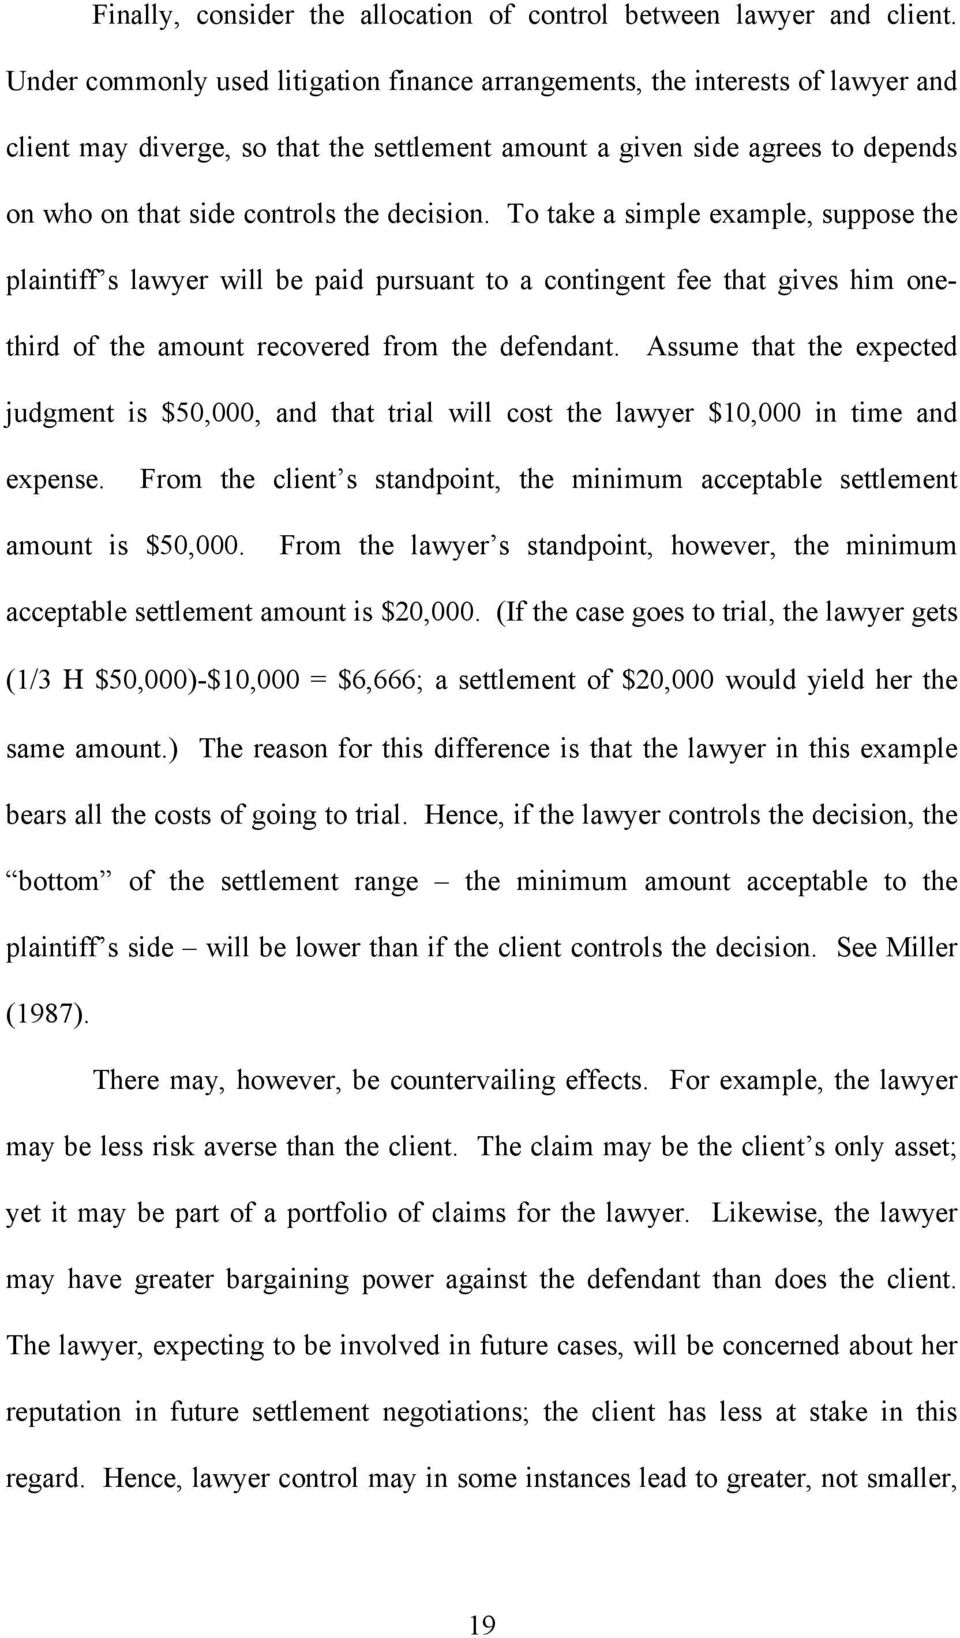 decision. To take a simple example, suppose the plaintiff s lawyer will be paid pursuant to a contingent fee that gives him onethird of the amount recovered from the defendant.